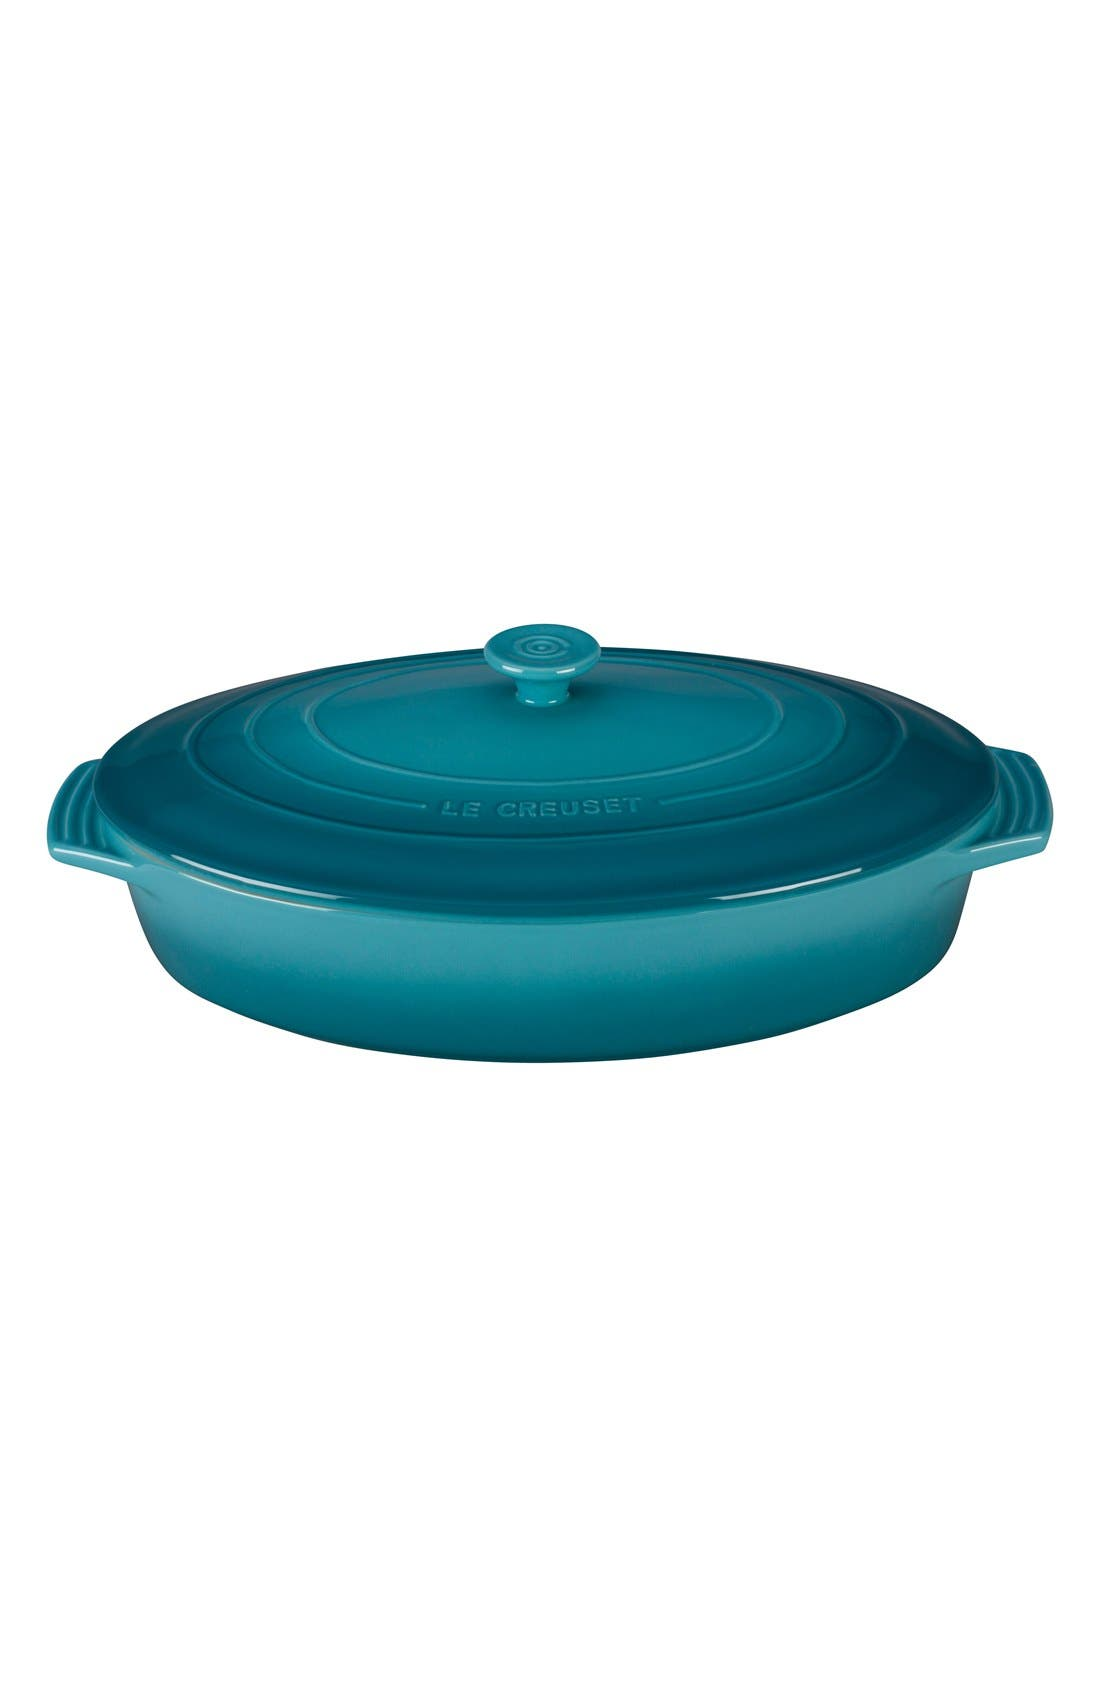 LE CREUSET 3 3/4 Quart Covered Oval Stoneware